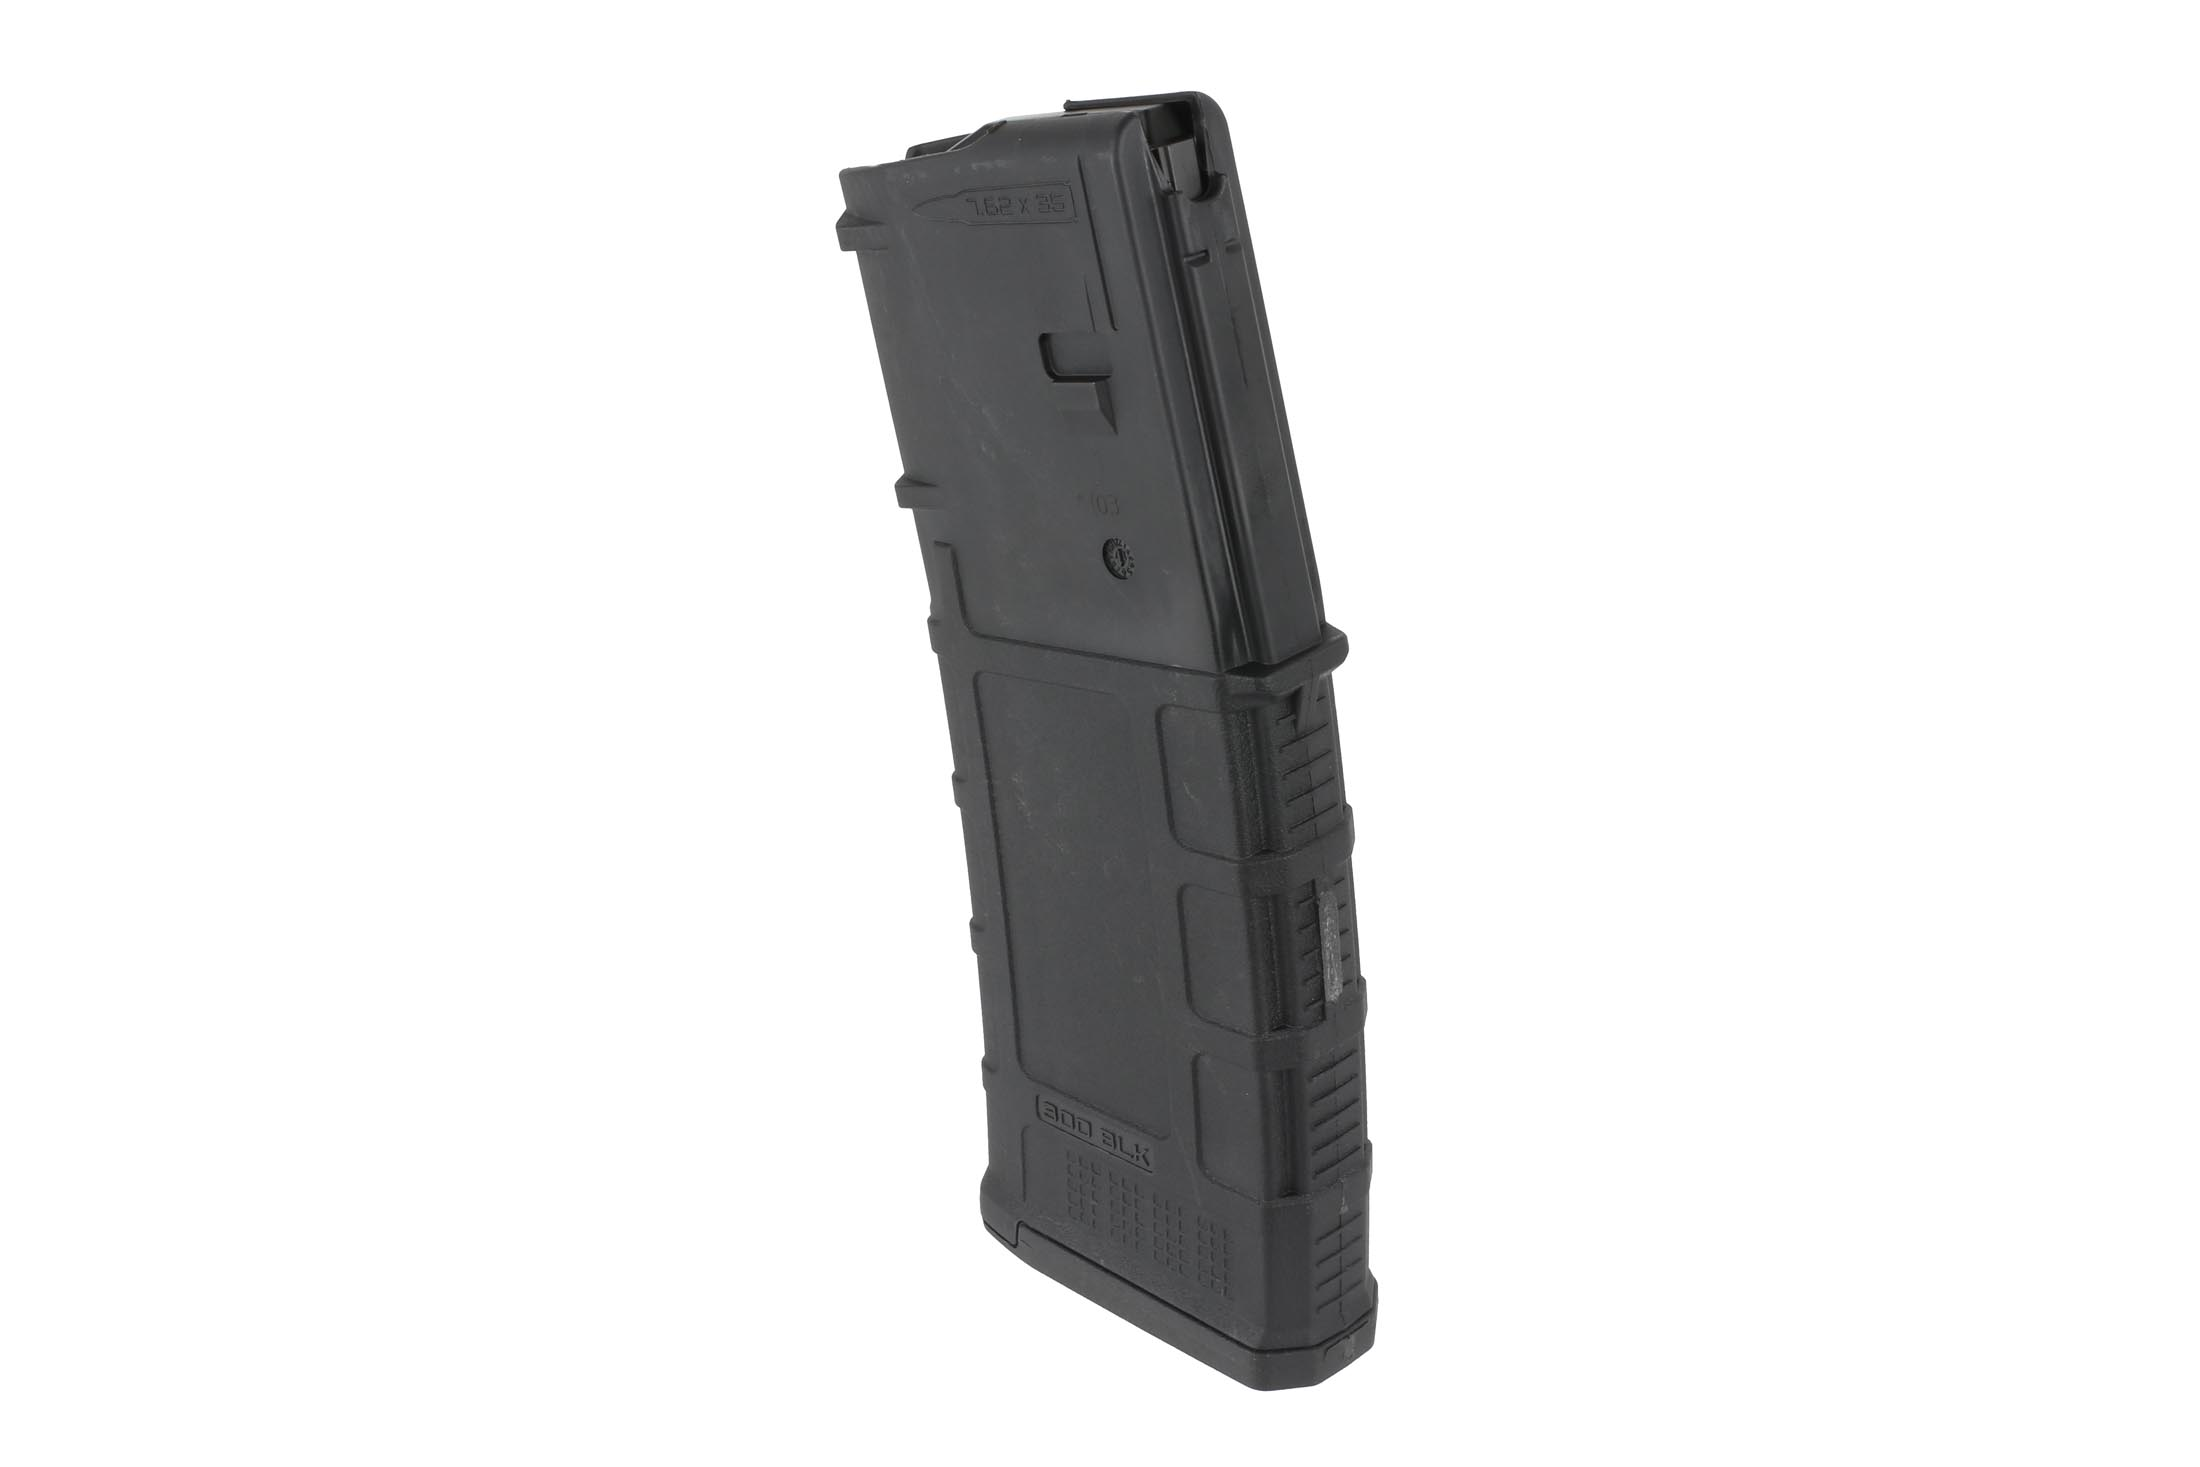 The Magpul 300 AAC Blackout pmag Magazine is a gen 3 ar300b model that holds 30 rounds of .300 blk ammunition for your rifle